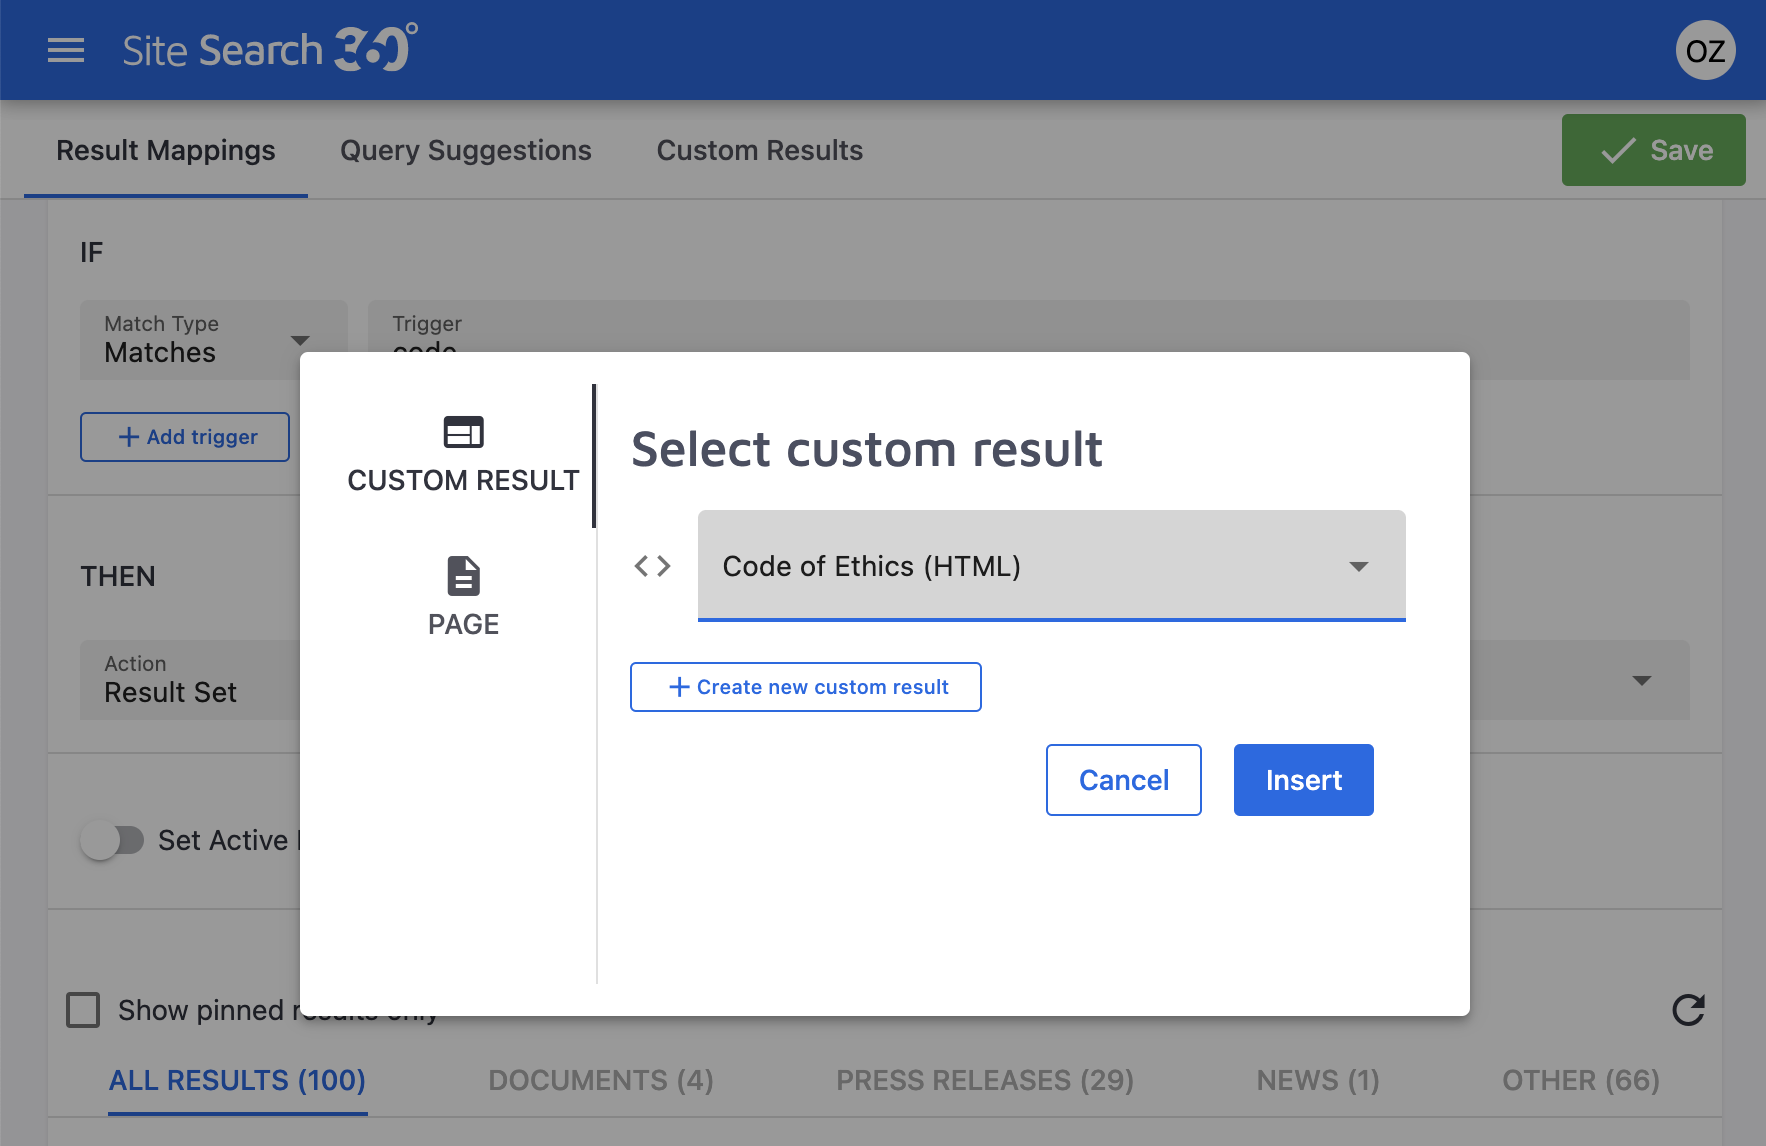 select a custom result to add to your result mapping